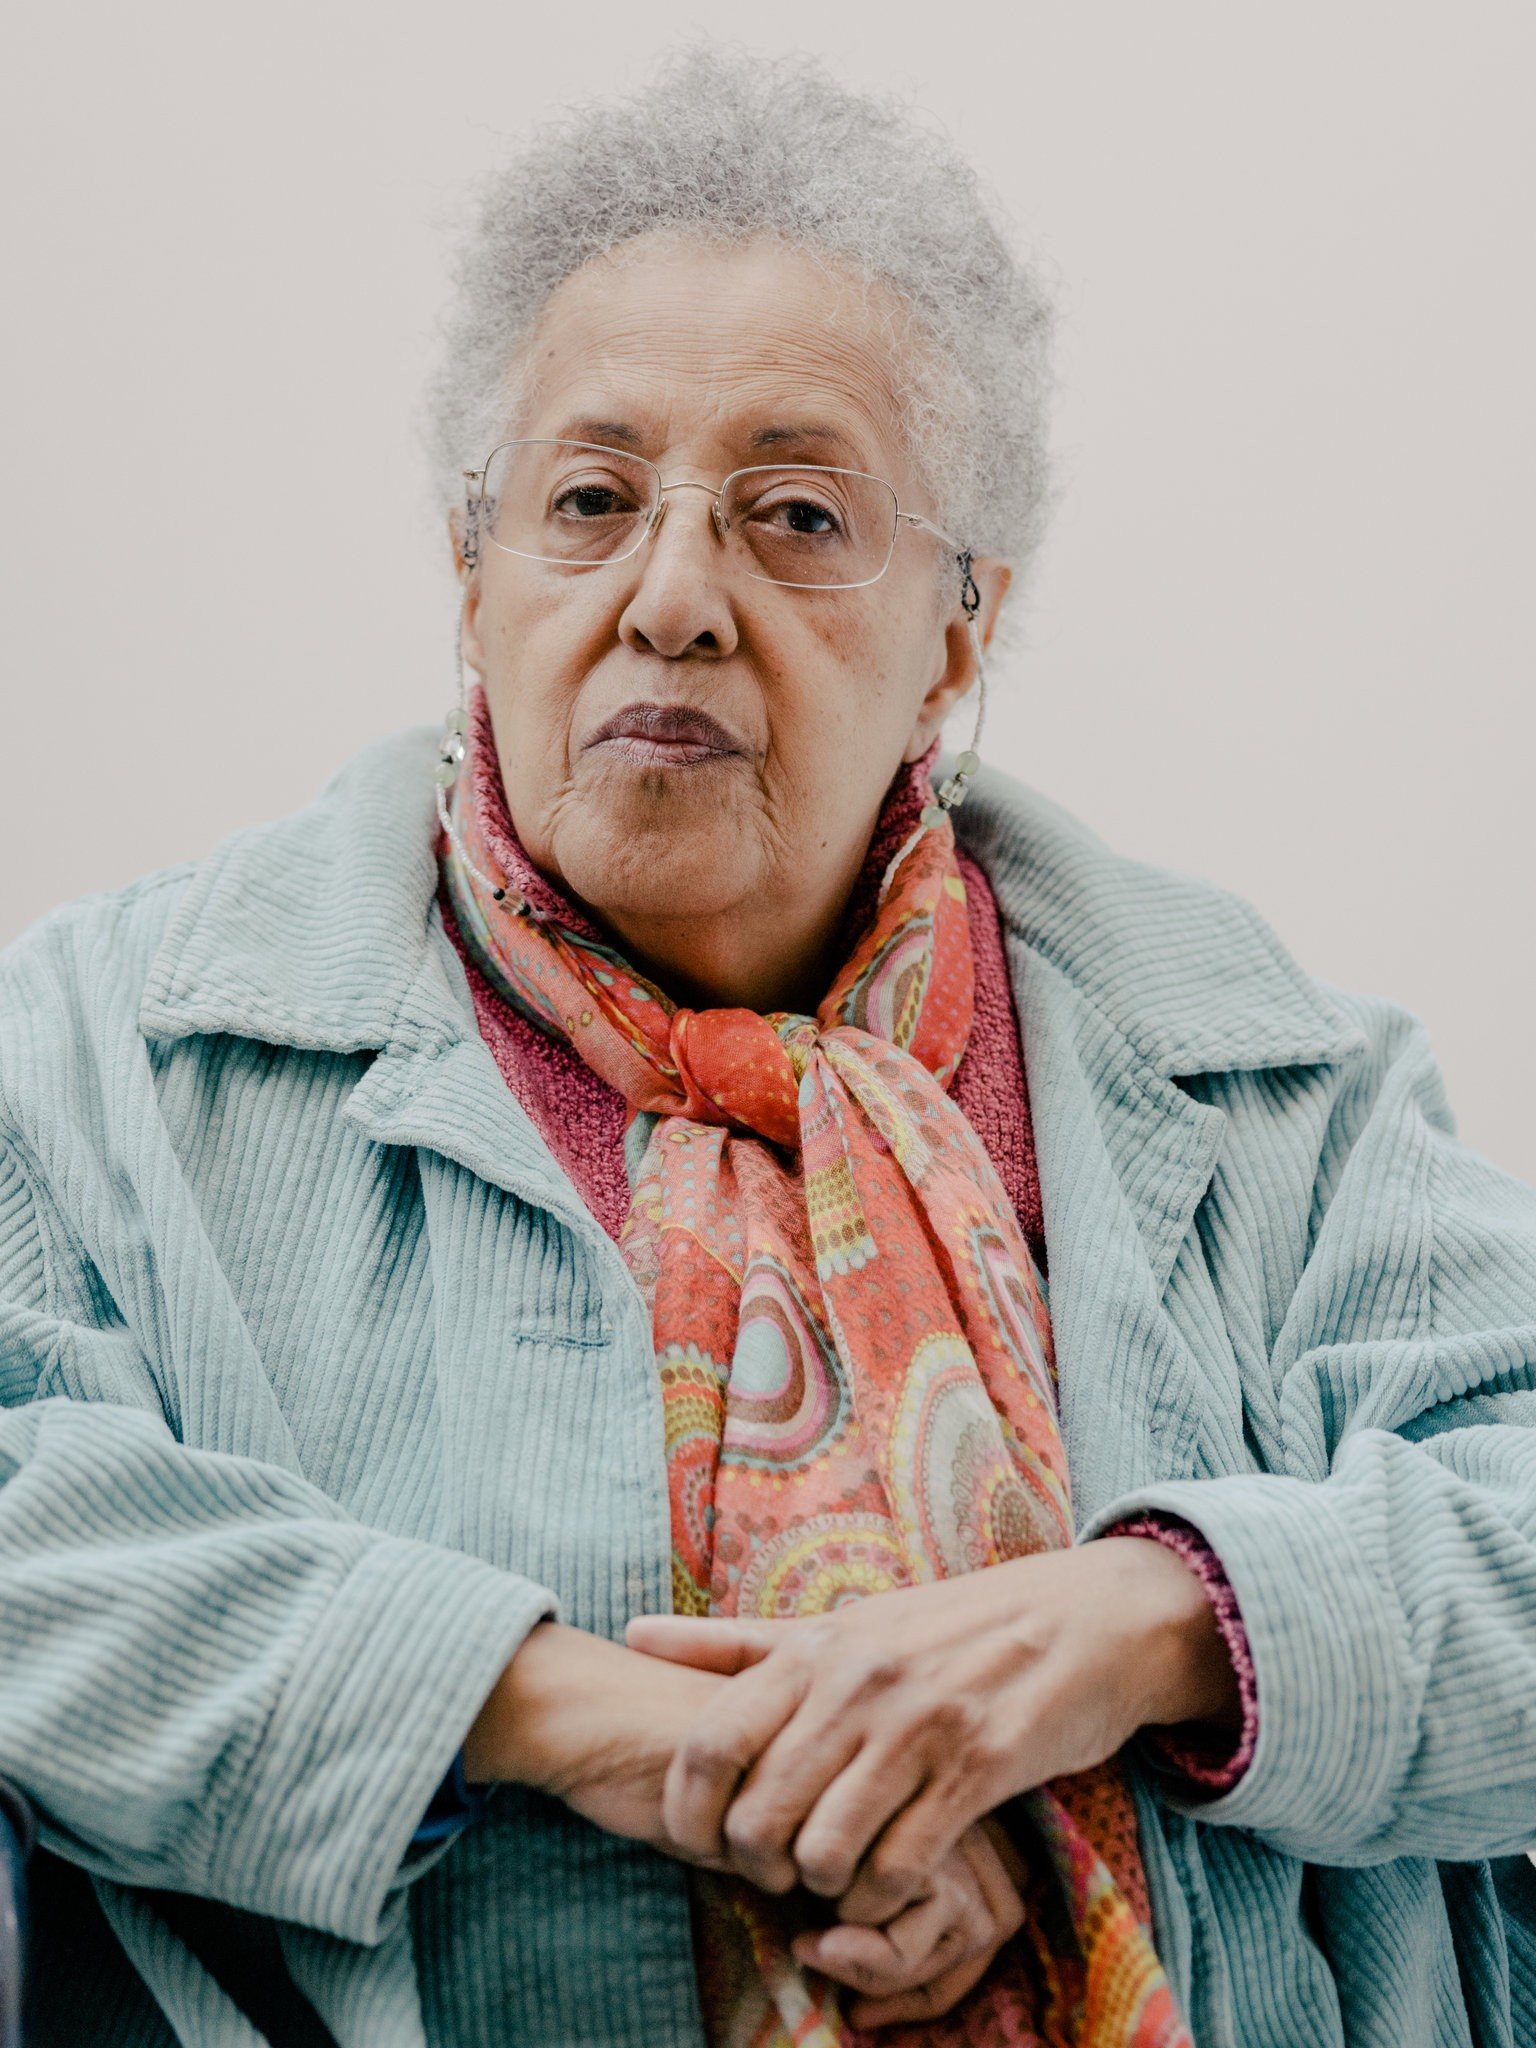 Howardena Pindell arrived in New York in 1967 to a cool reception; - her abstract art was frowned upon by both white and black members of the art community.